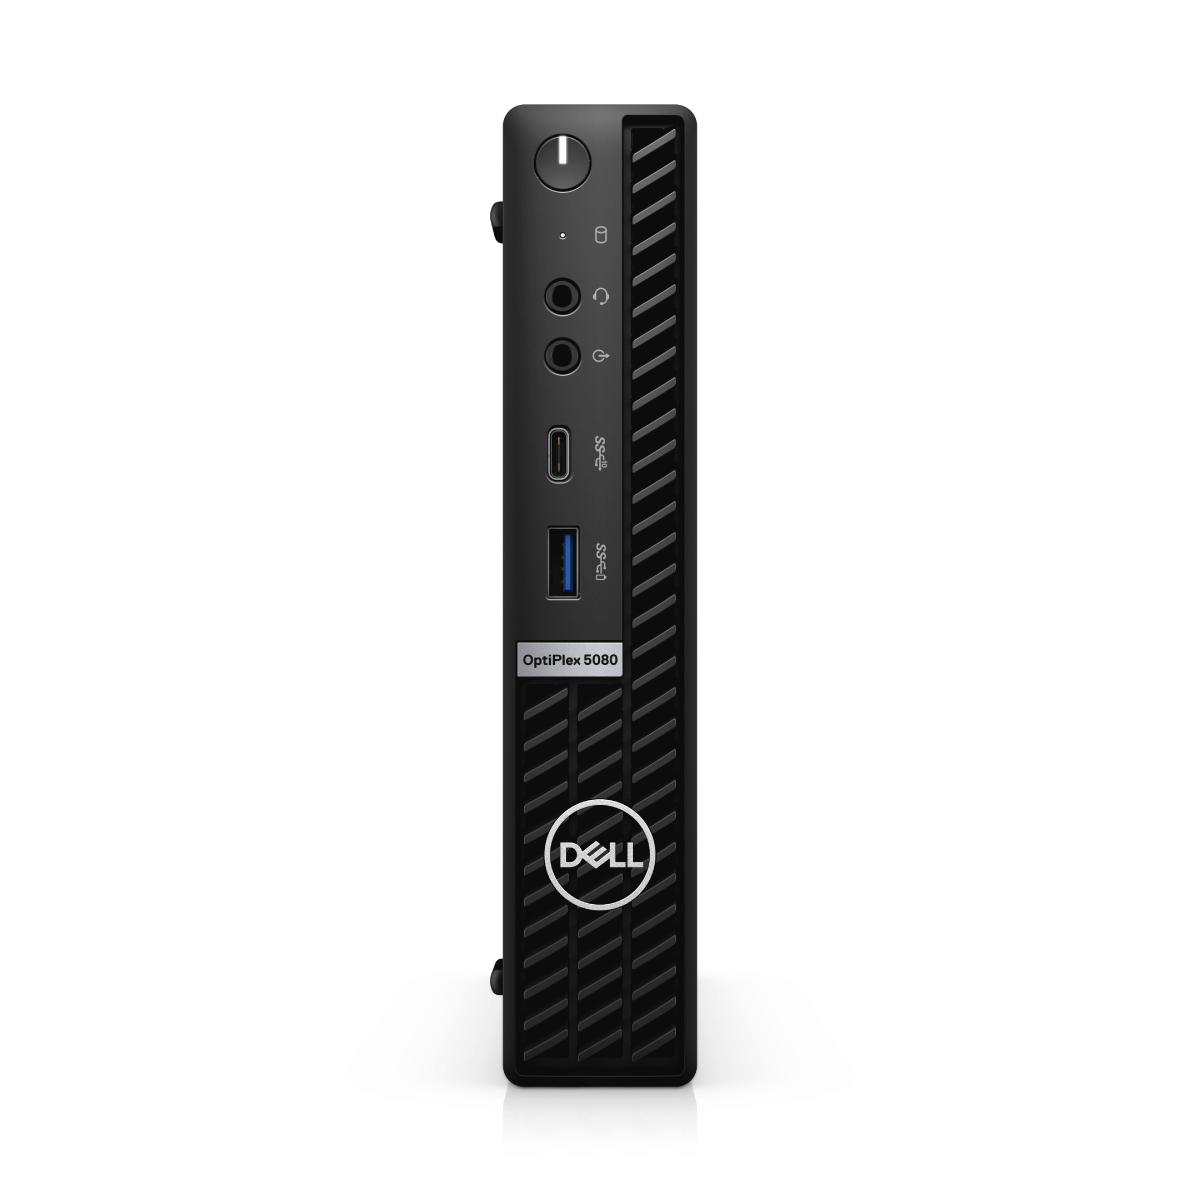 Dell OptiPlex 5080 Micro (i5, Black)